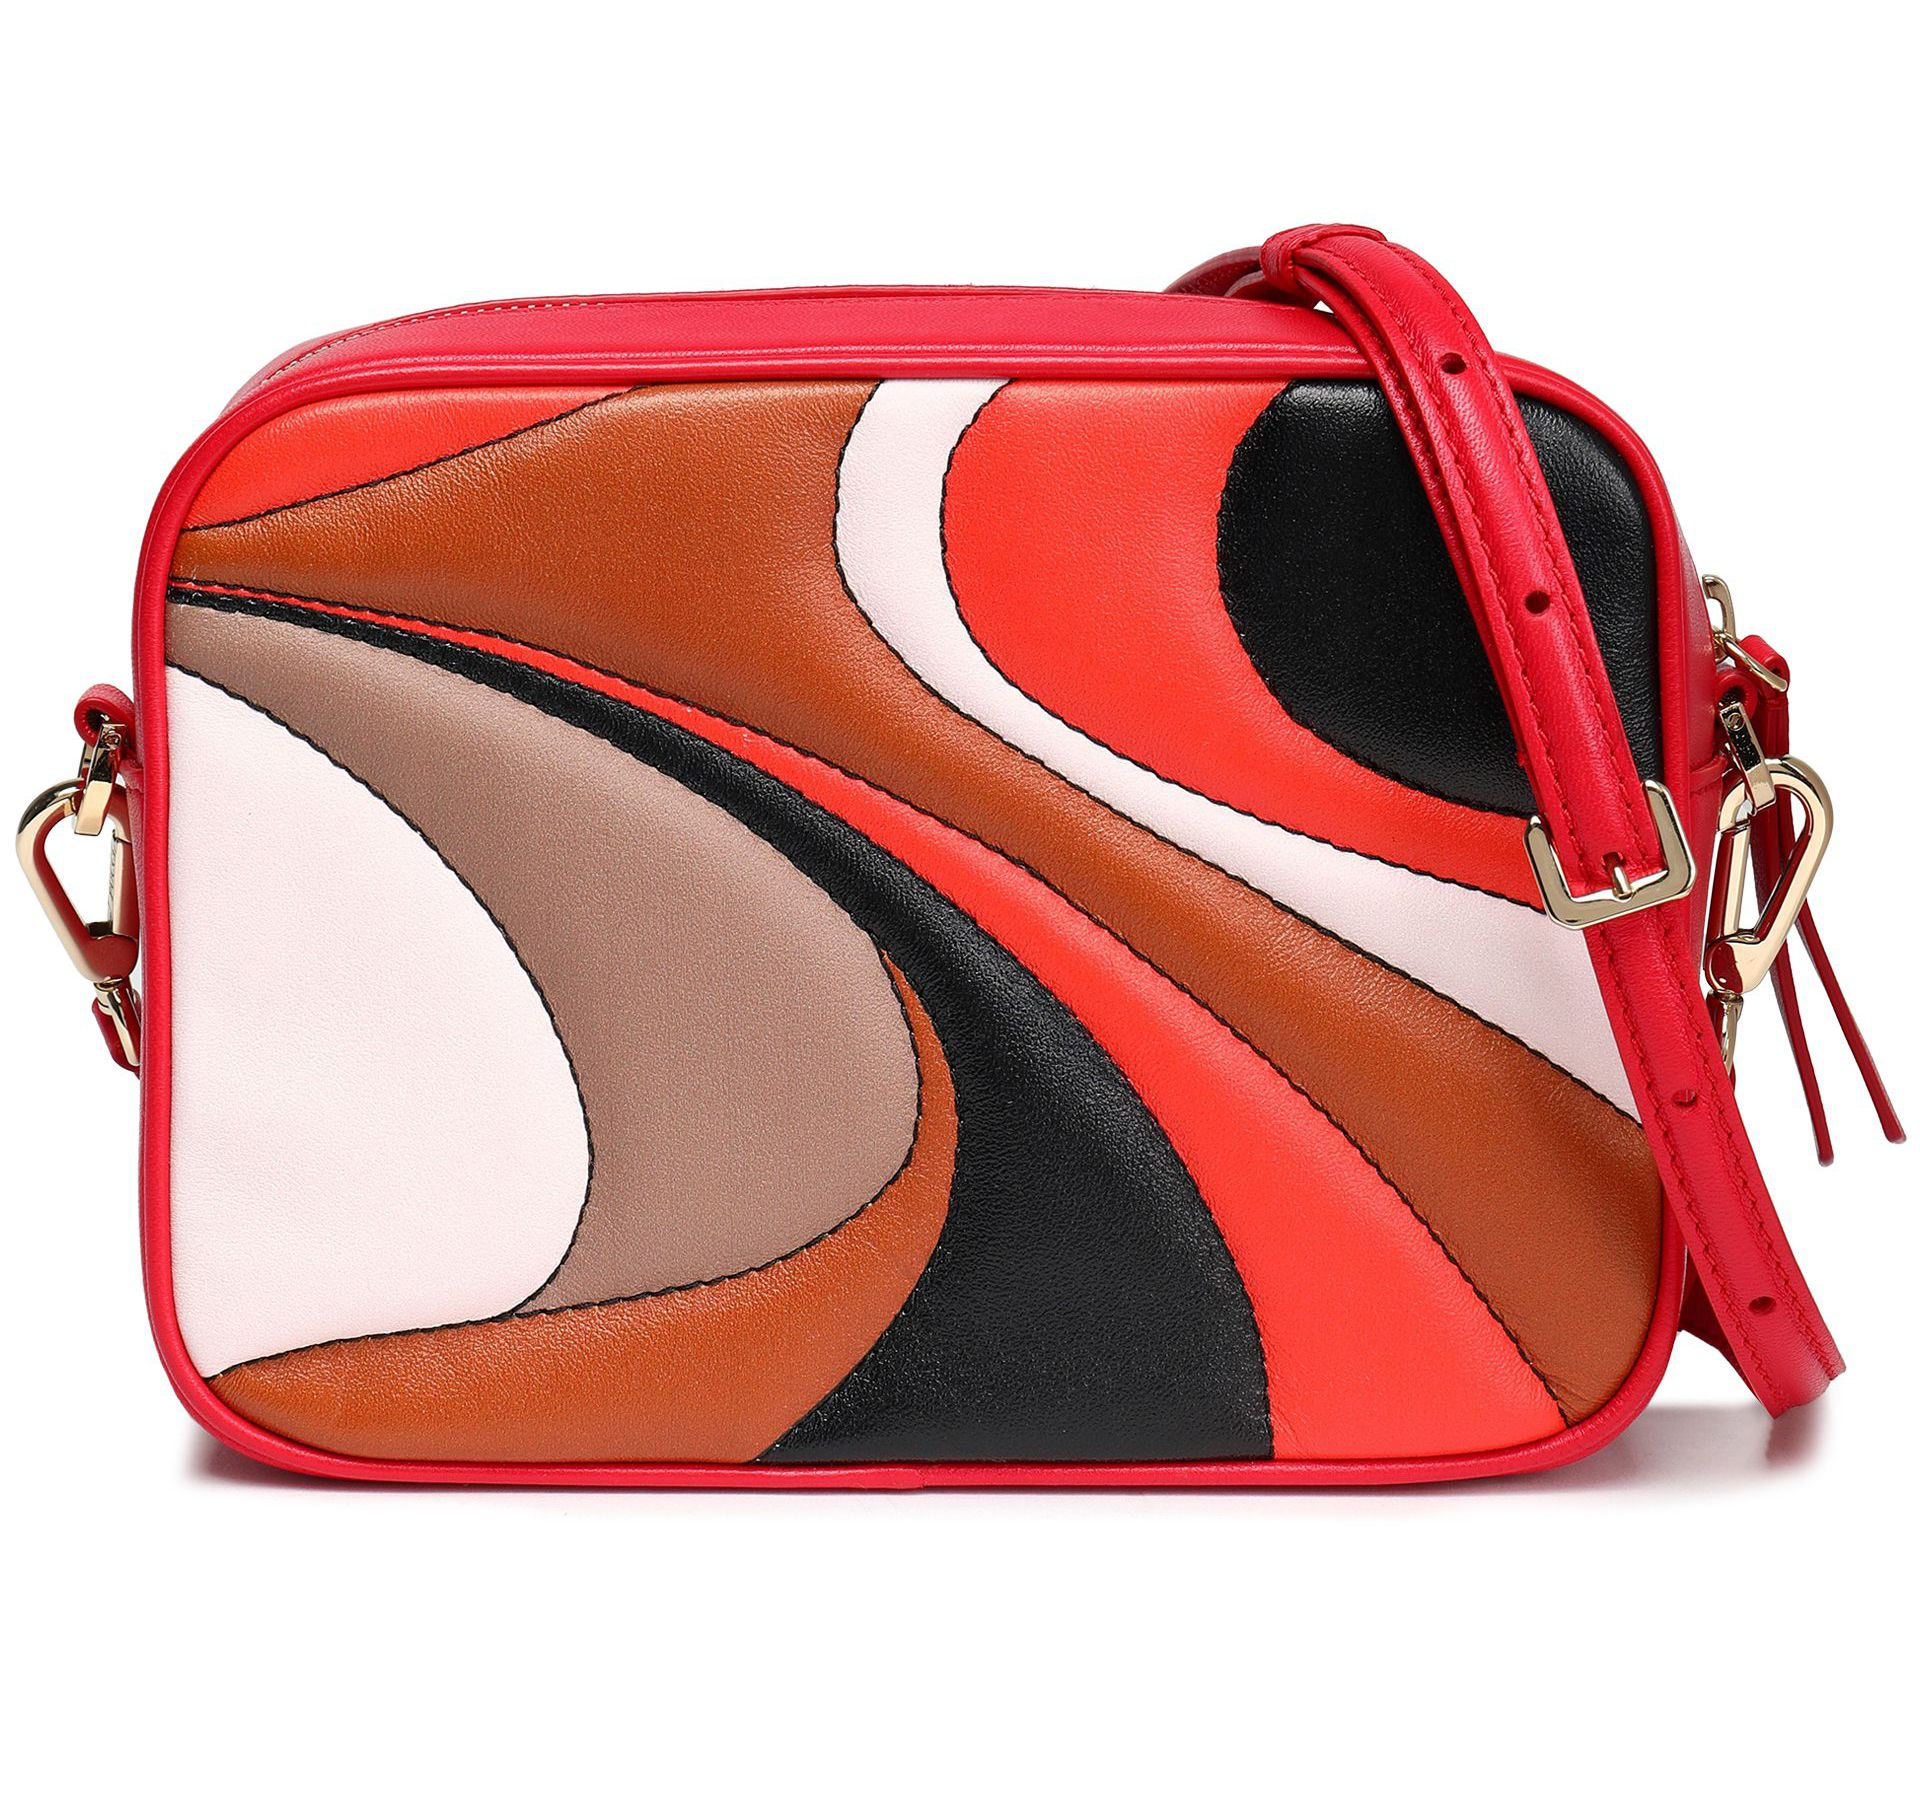 emilio-pucci-red-quilted-leather-shoulder-bag-the-outnet-sale